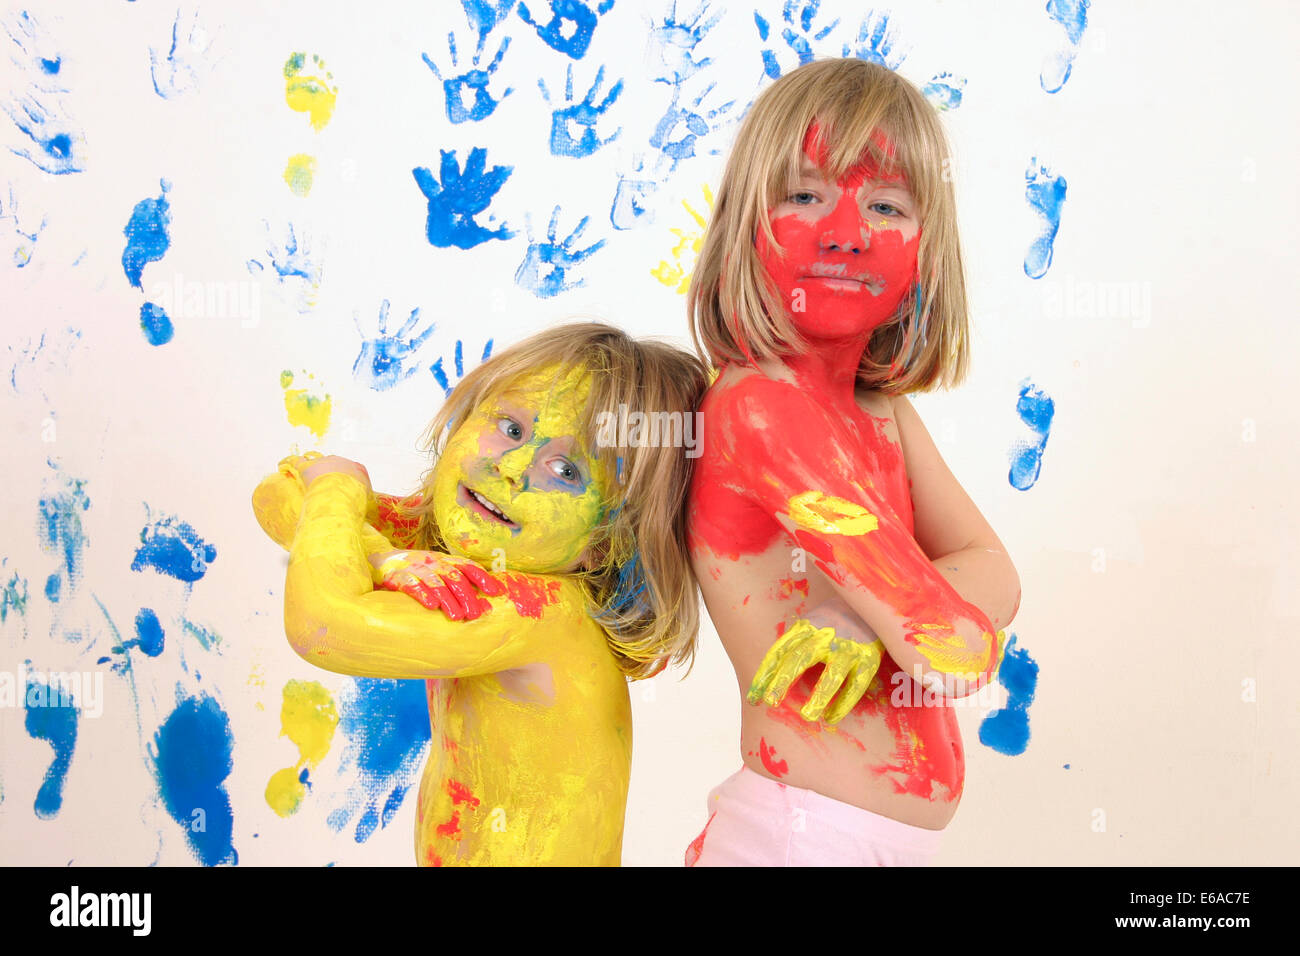 child,body paint - Stock Image